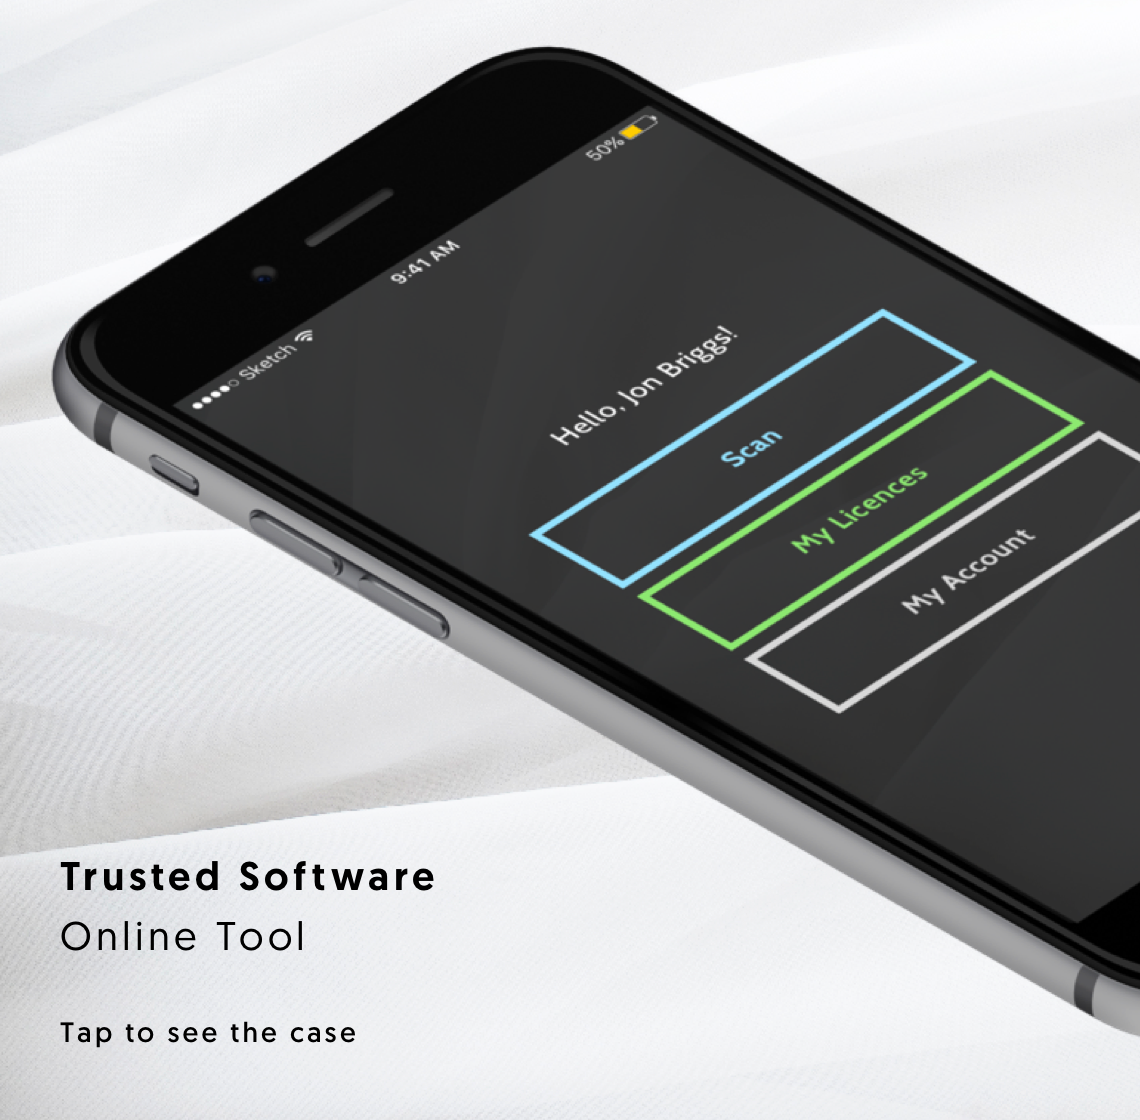 trusted-software